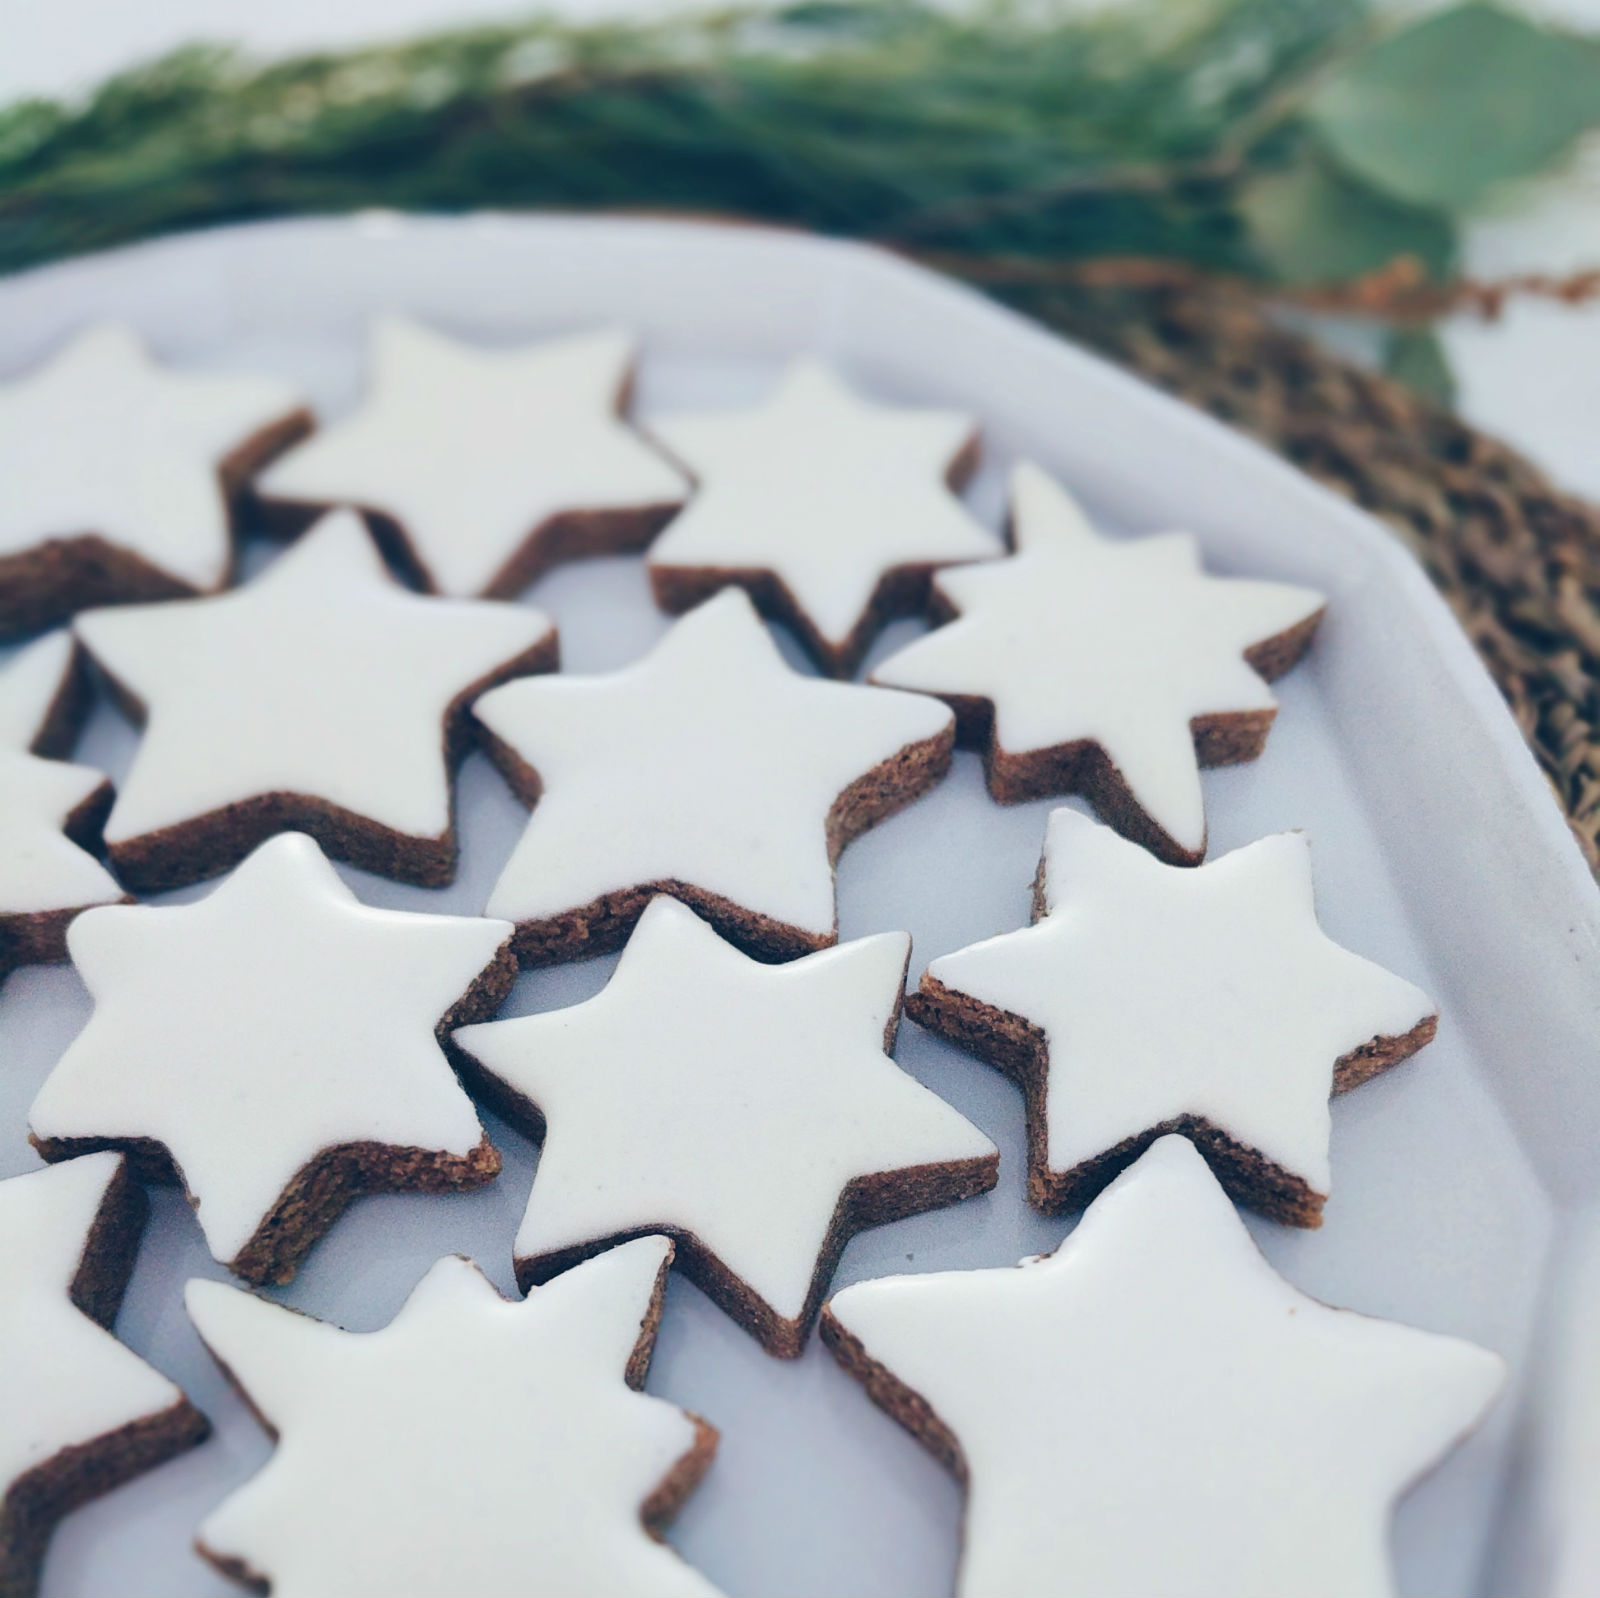 Shiny, smooth meringue icing on cinnamon stars (zimtsterne).